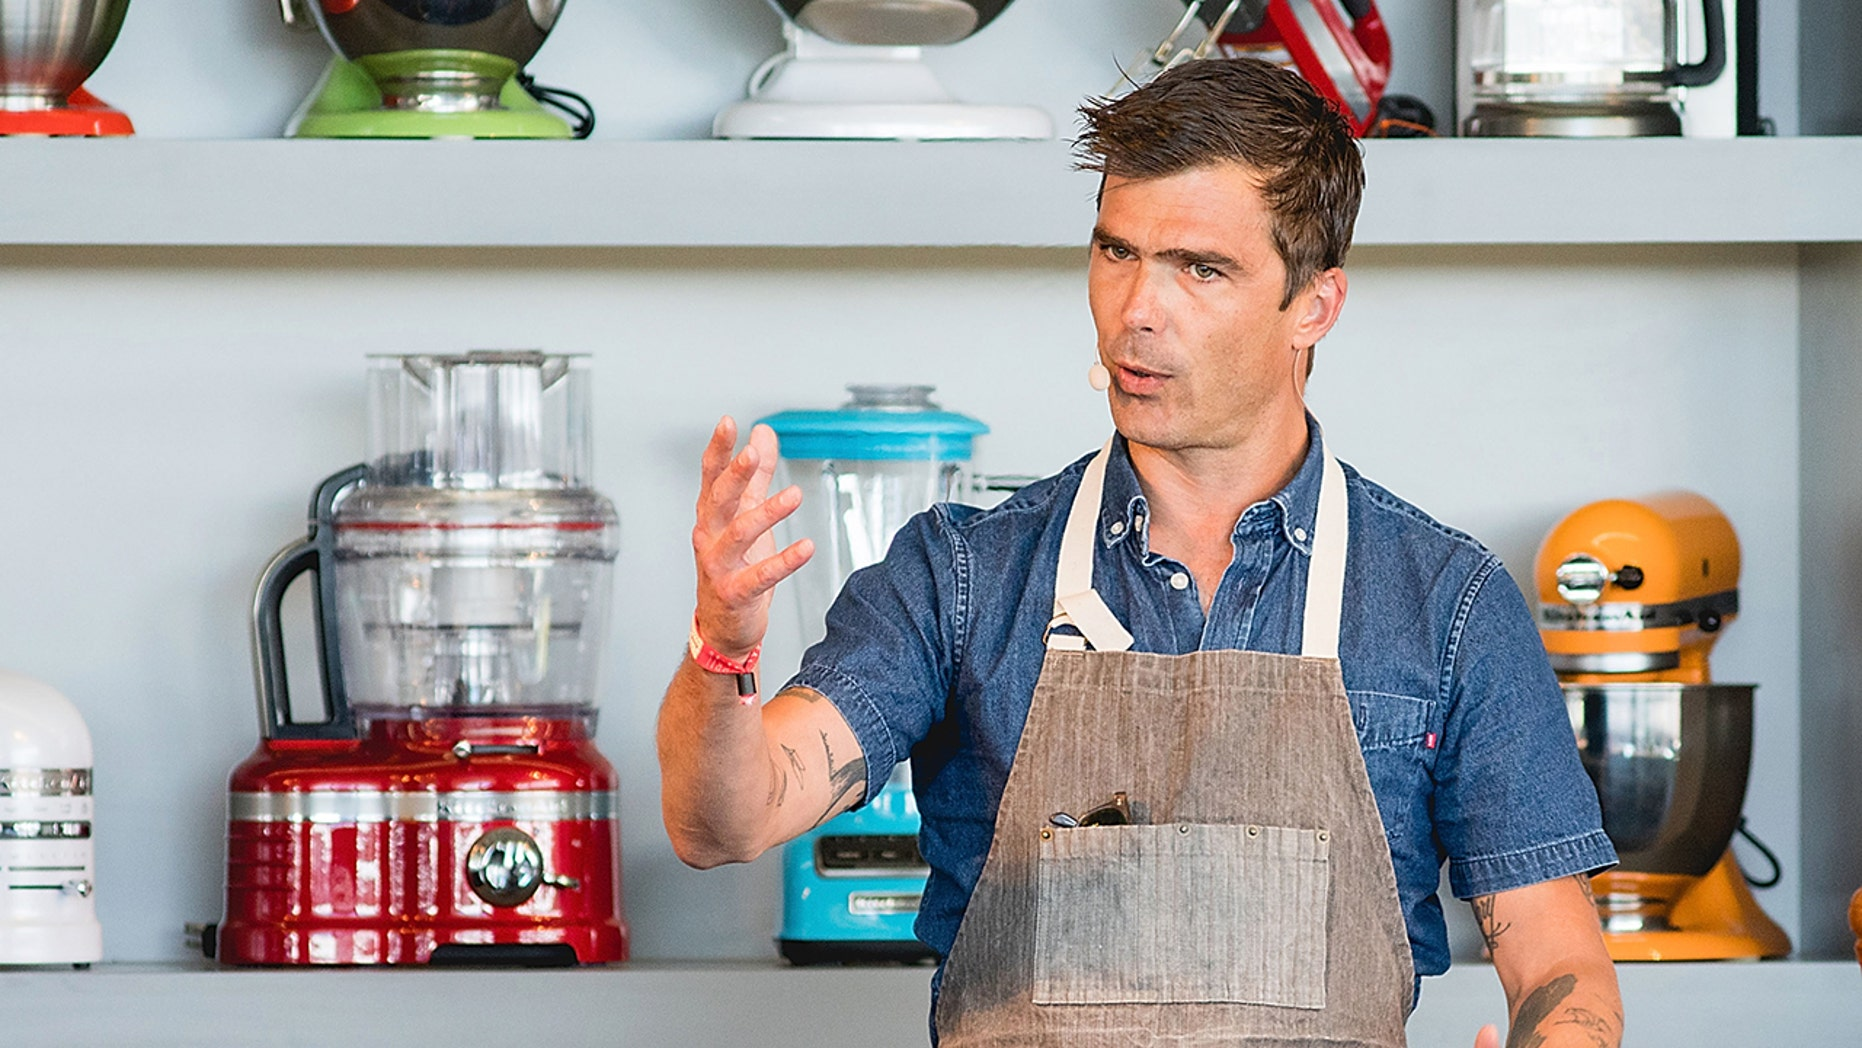 Chef Hugh Acheson, in partnership with Maple from Canada, shared a filling recipe with Fox News, featuring warm ancient-grain farro and fresh vegetables